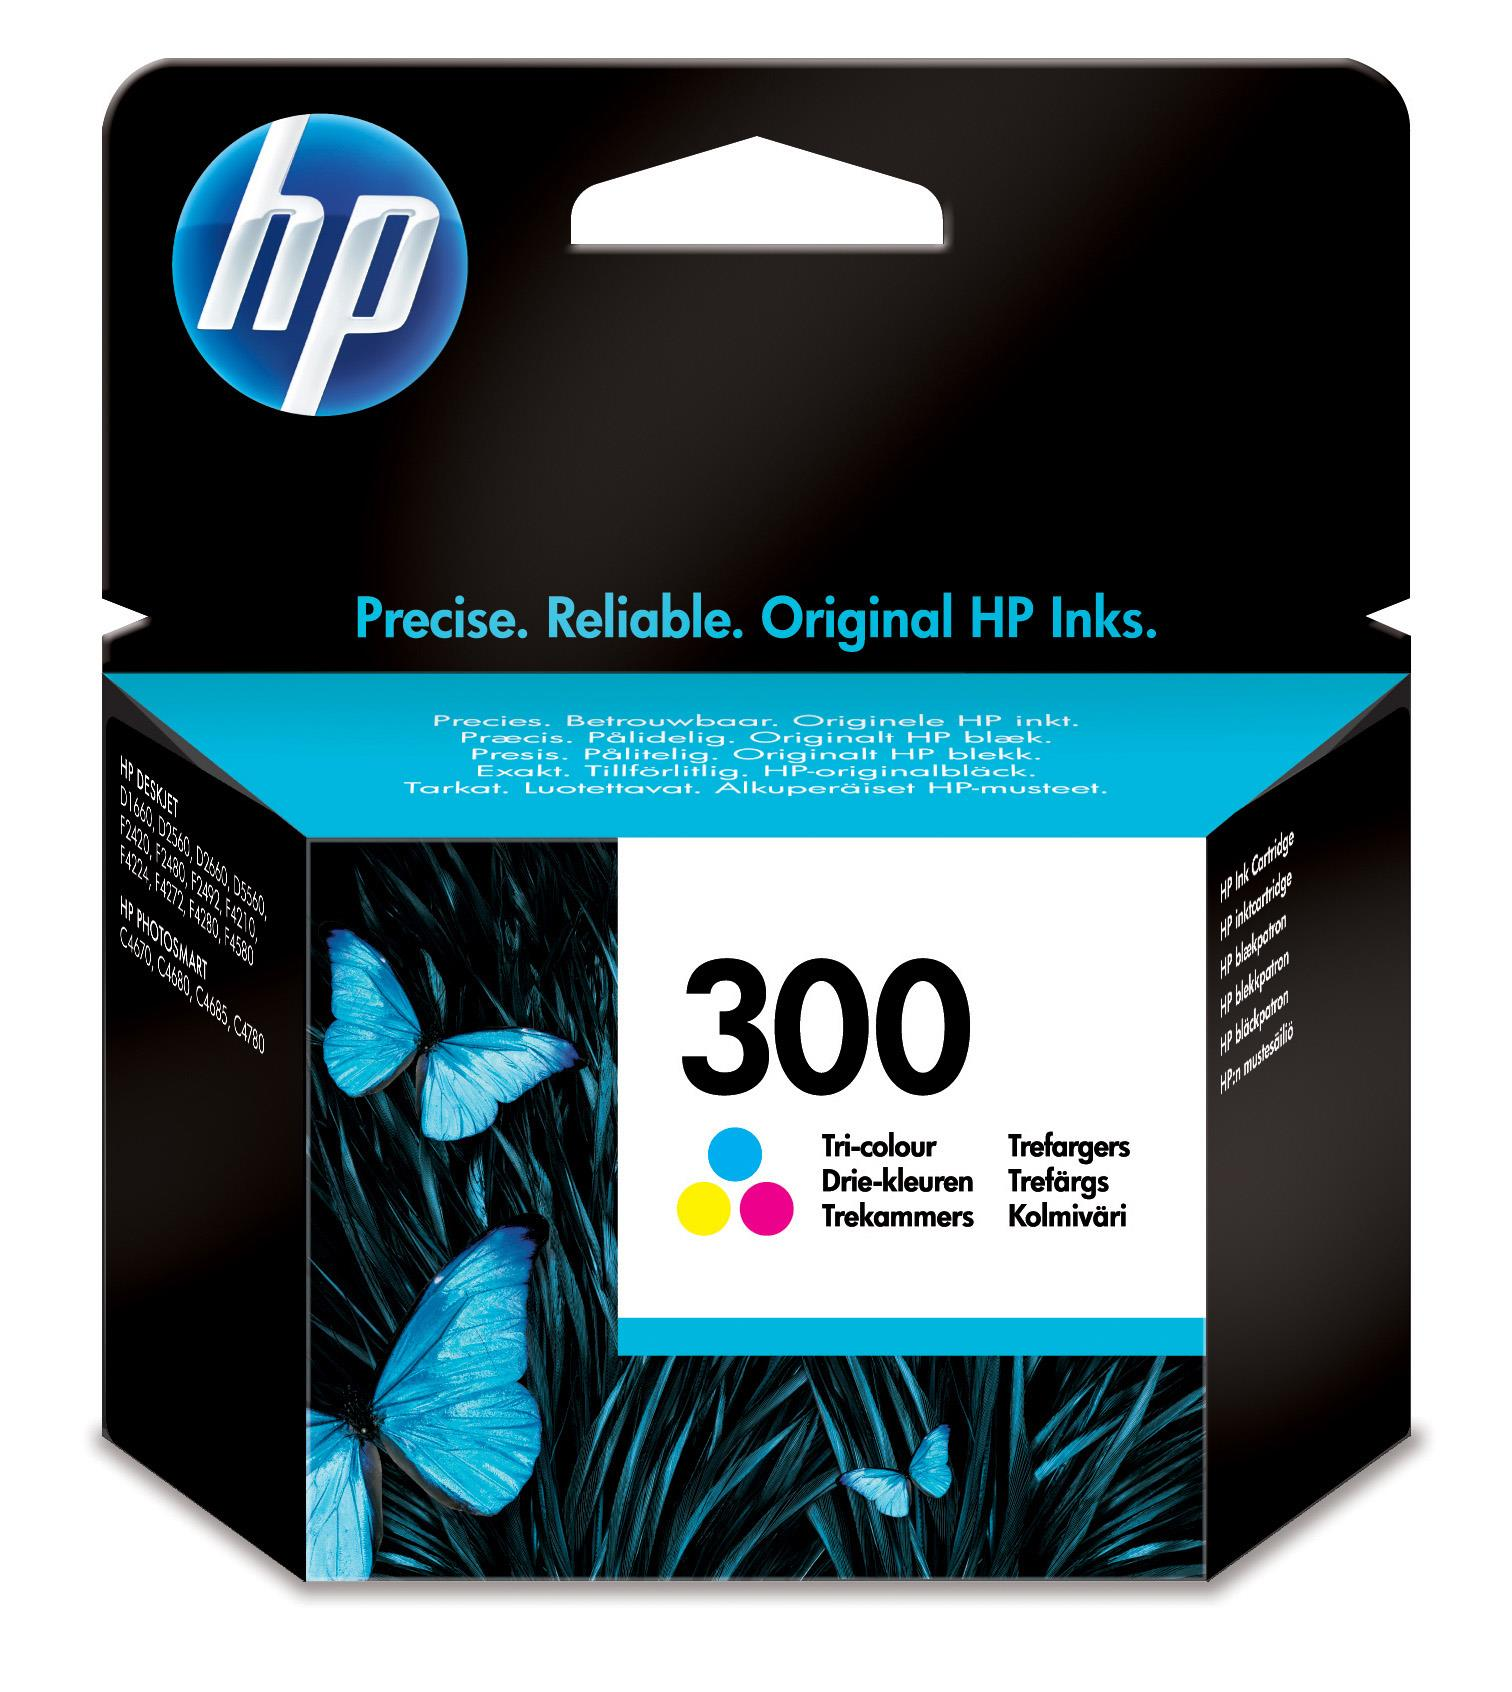 HP 300 (Yield: 165 Pages) Cyan/Magenta/Yellow Ink Cartridge